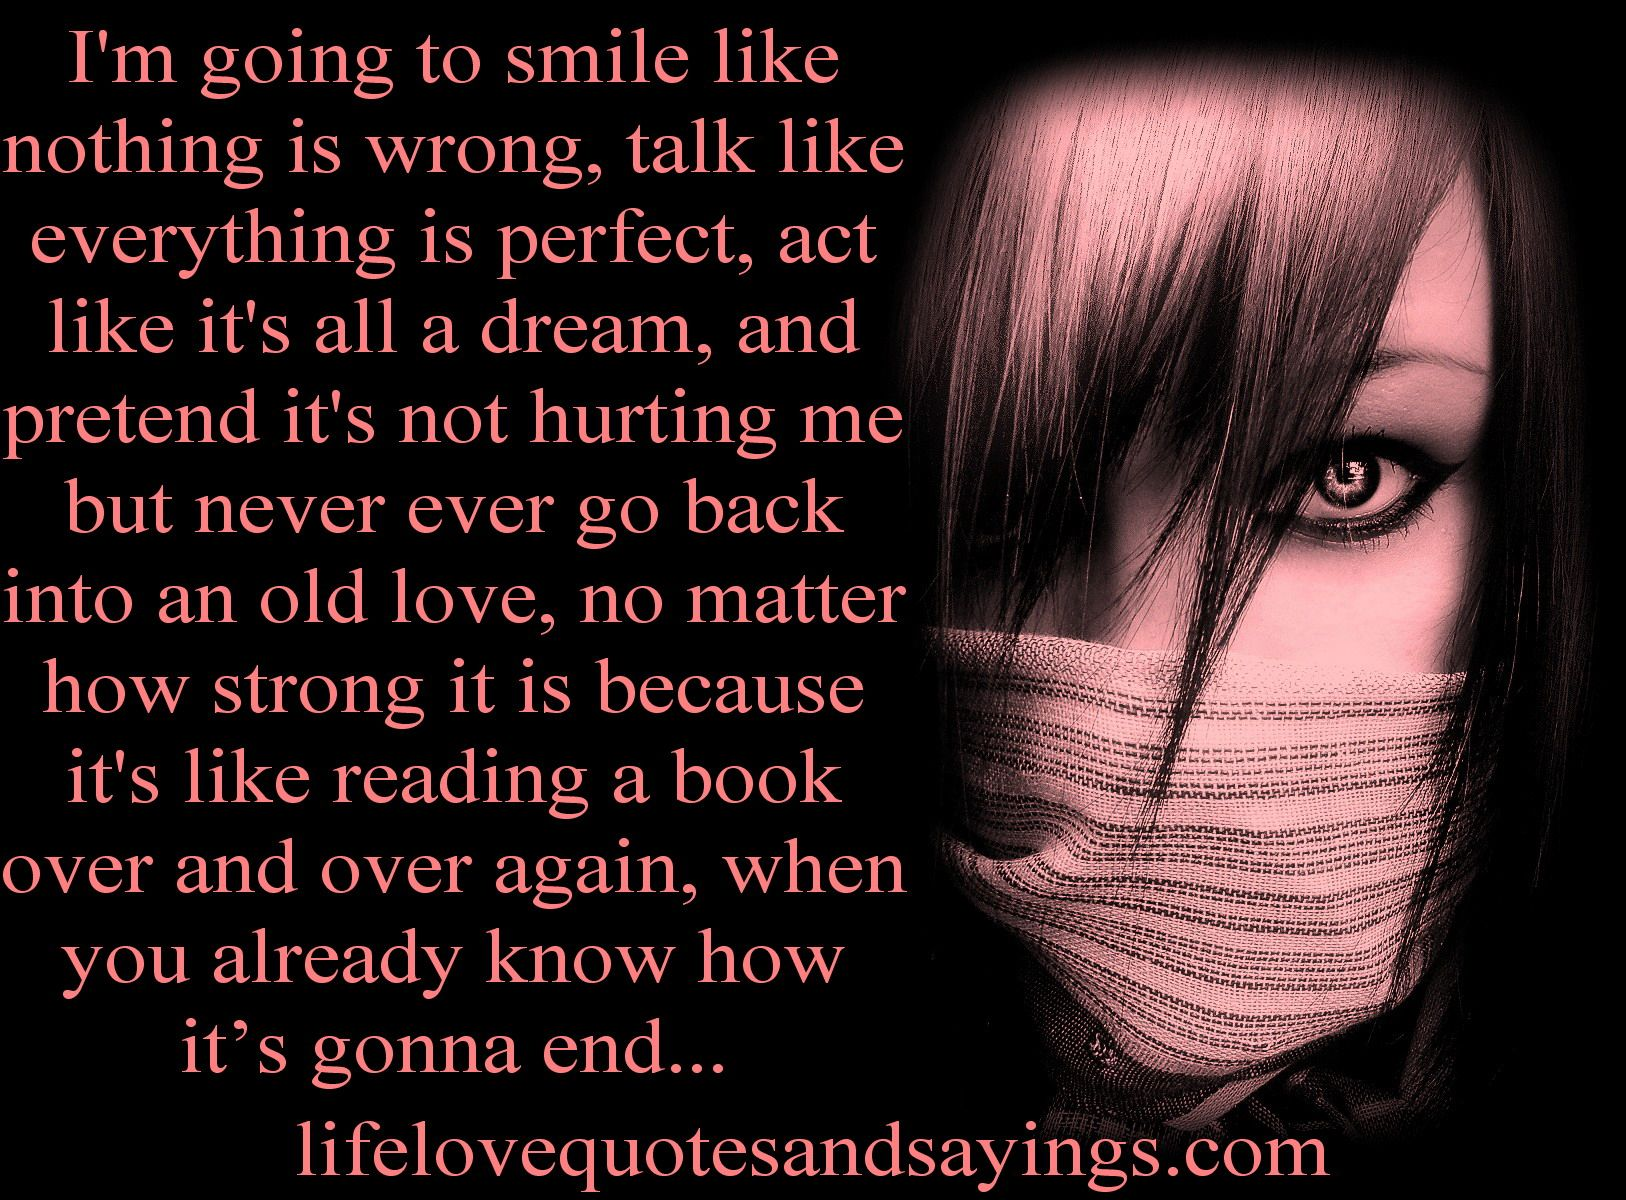 Life Quotes Picture I Am Going To Smile Like Nothing Is Wrong Quote And The Picture The Sad Girl quotes about life hurting you life quotes about